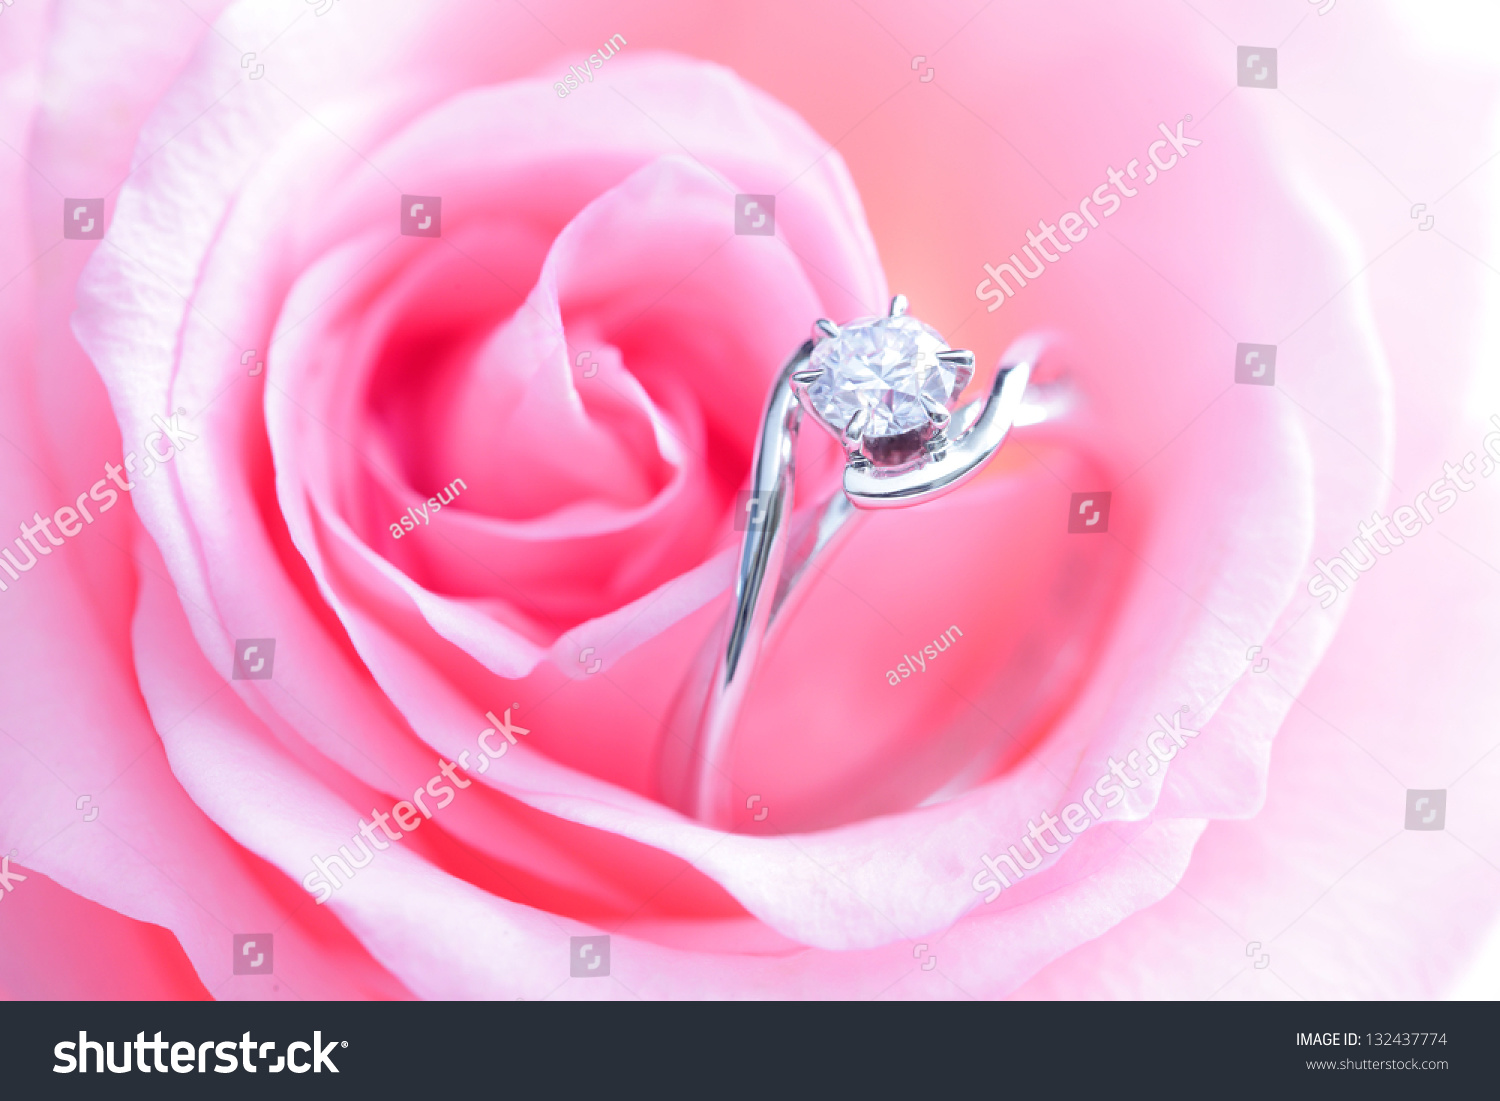 Beautiful Romantic Pink Rose Diamond Wedding Stock Photo (Edit Now ...